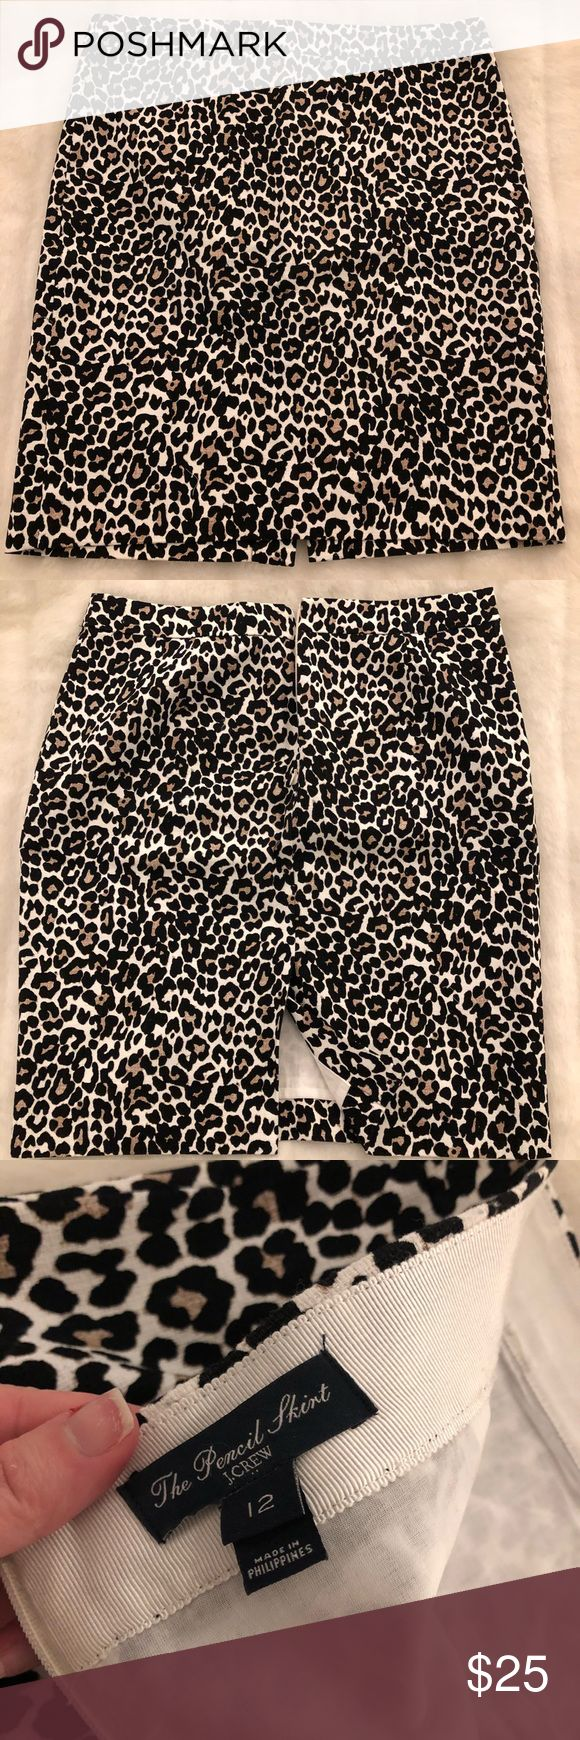 J. Crew leopard pencil skirt Very gently used, only worn one time. SOLD OUT! Versatile, hits just above the knee. This is sized L but runs very small so true size would be an 8-10. J. Crew Factory Skirts Pencil